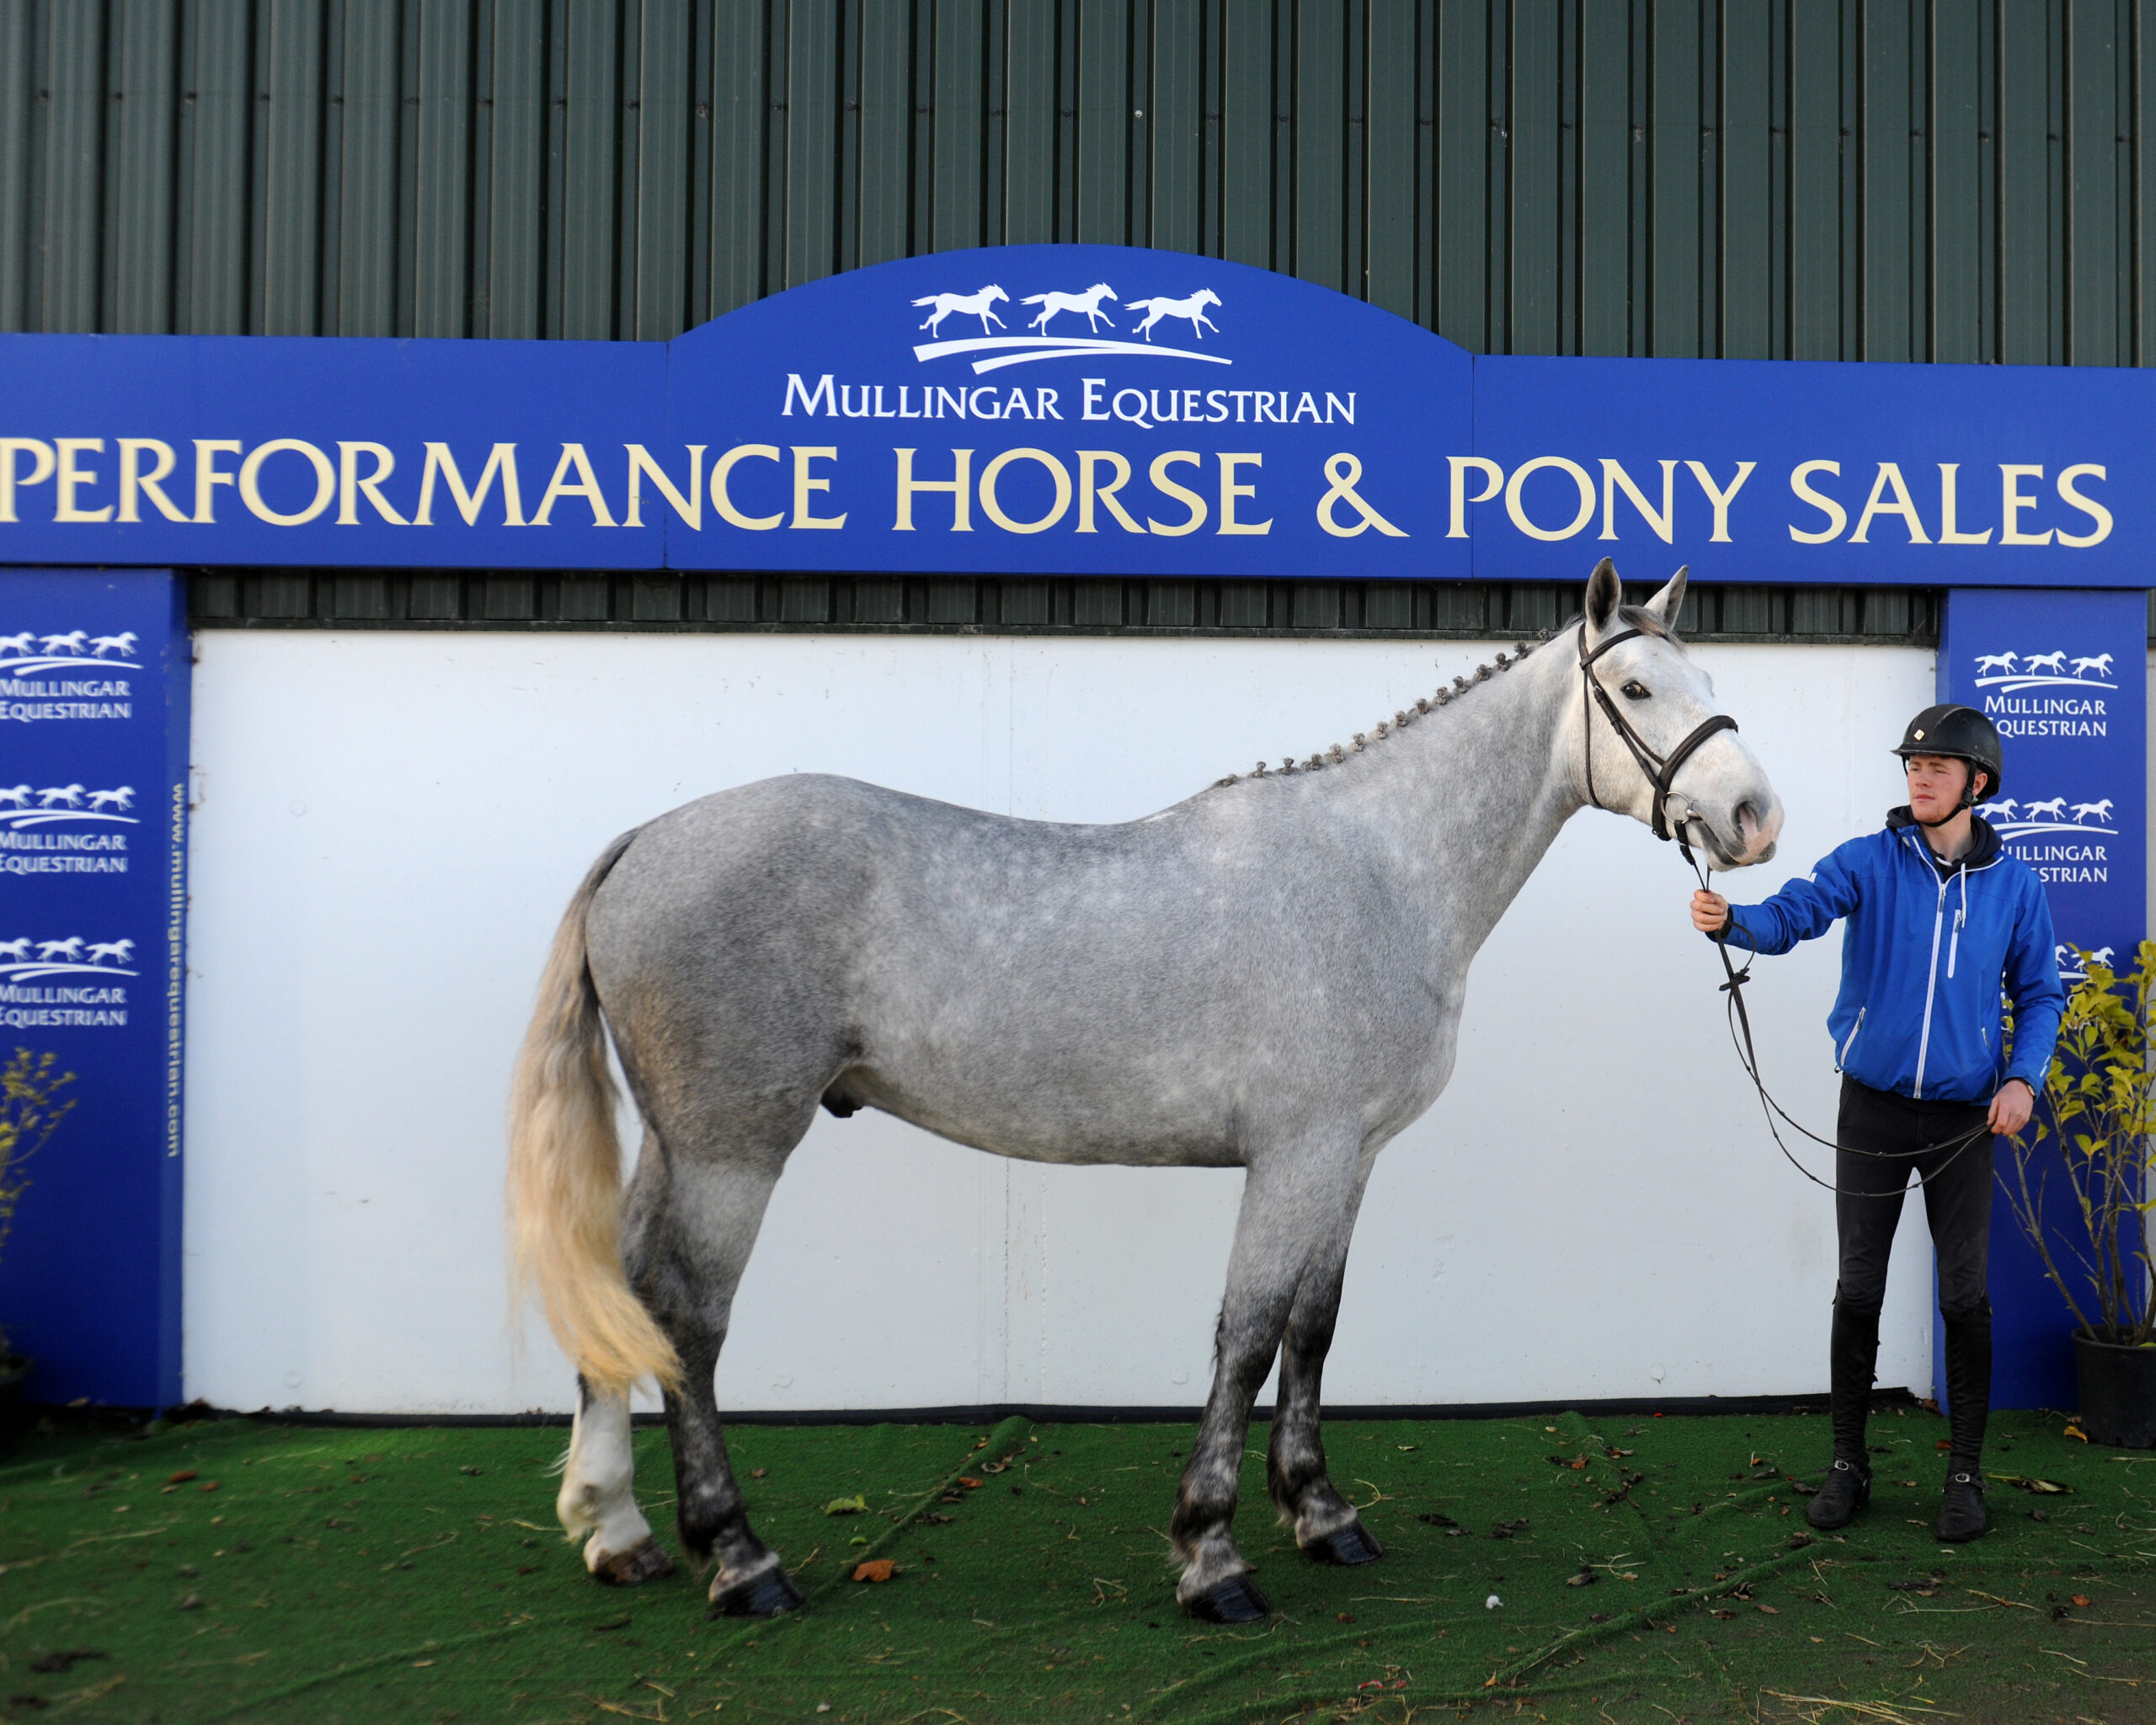 Performance Horse & Pony Sales